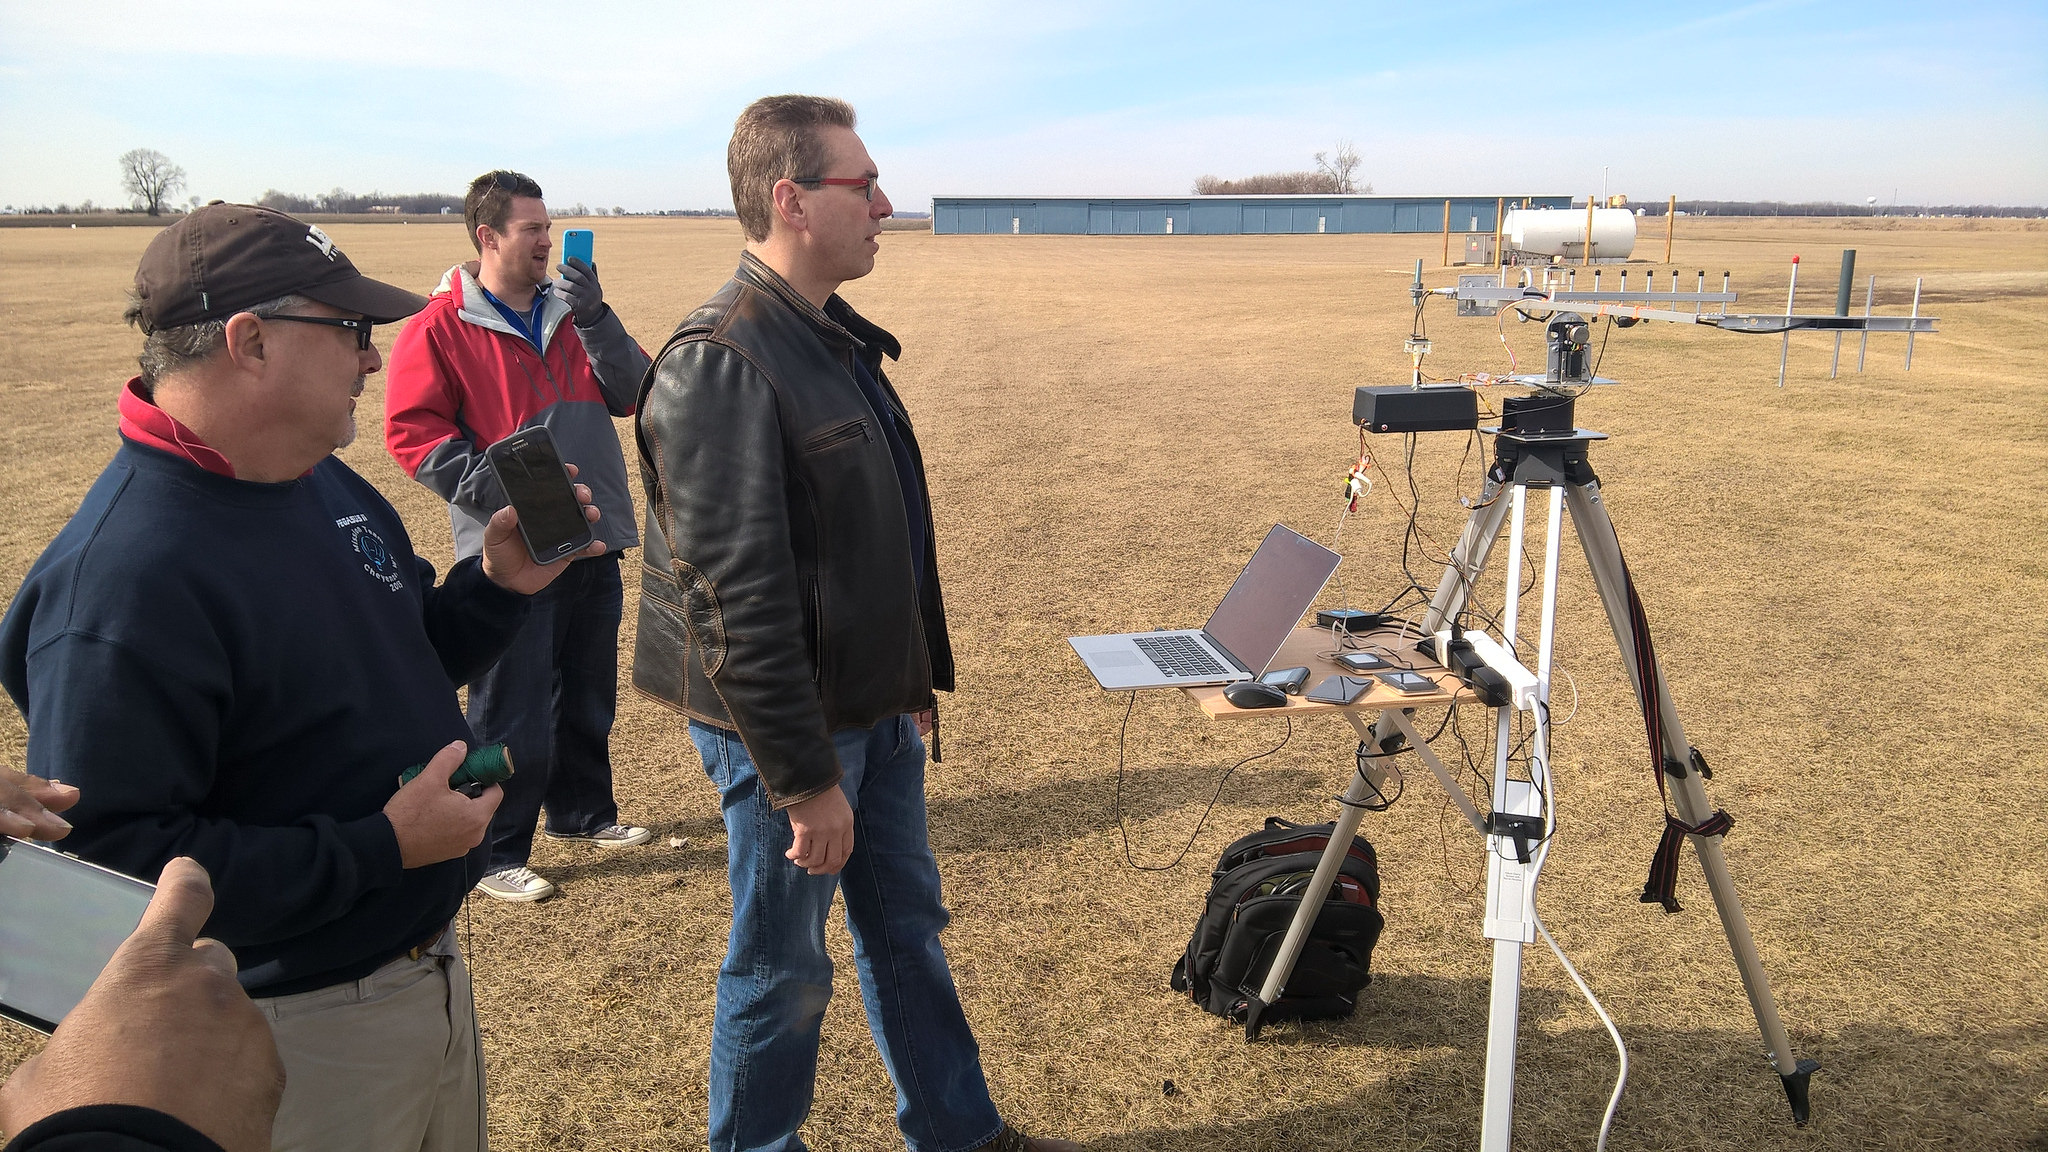 Pegasus II: Setting up the tracking antennas for data and video.